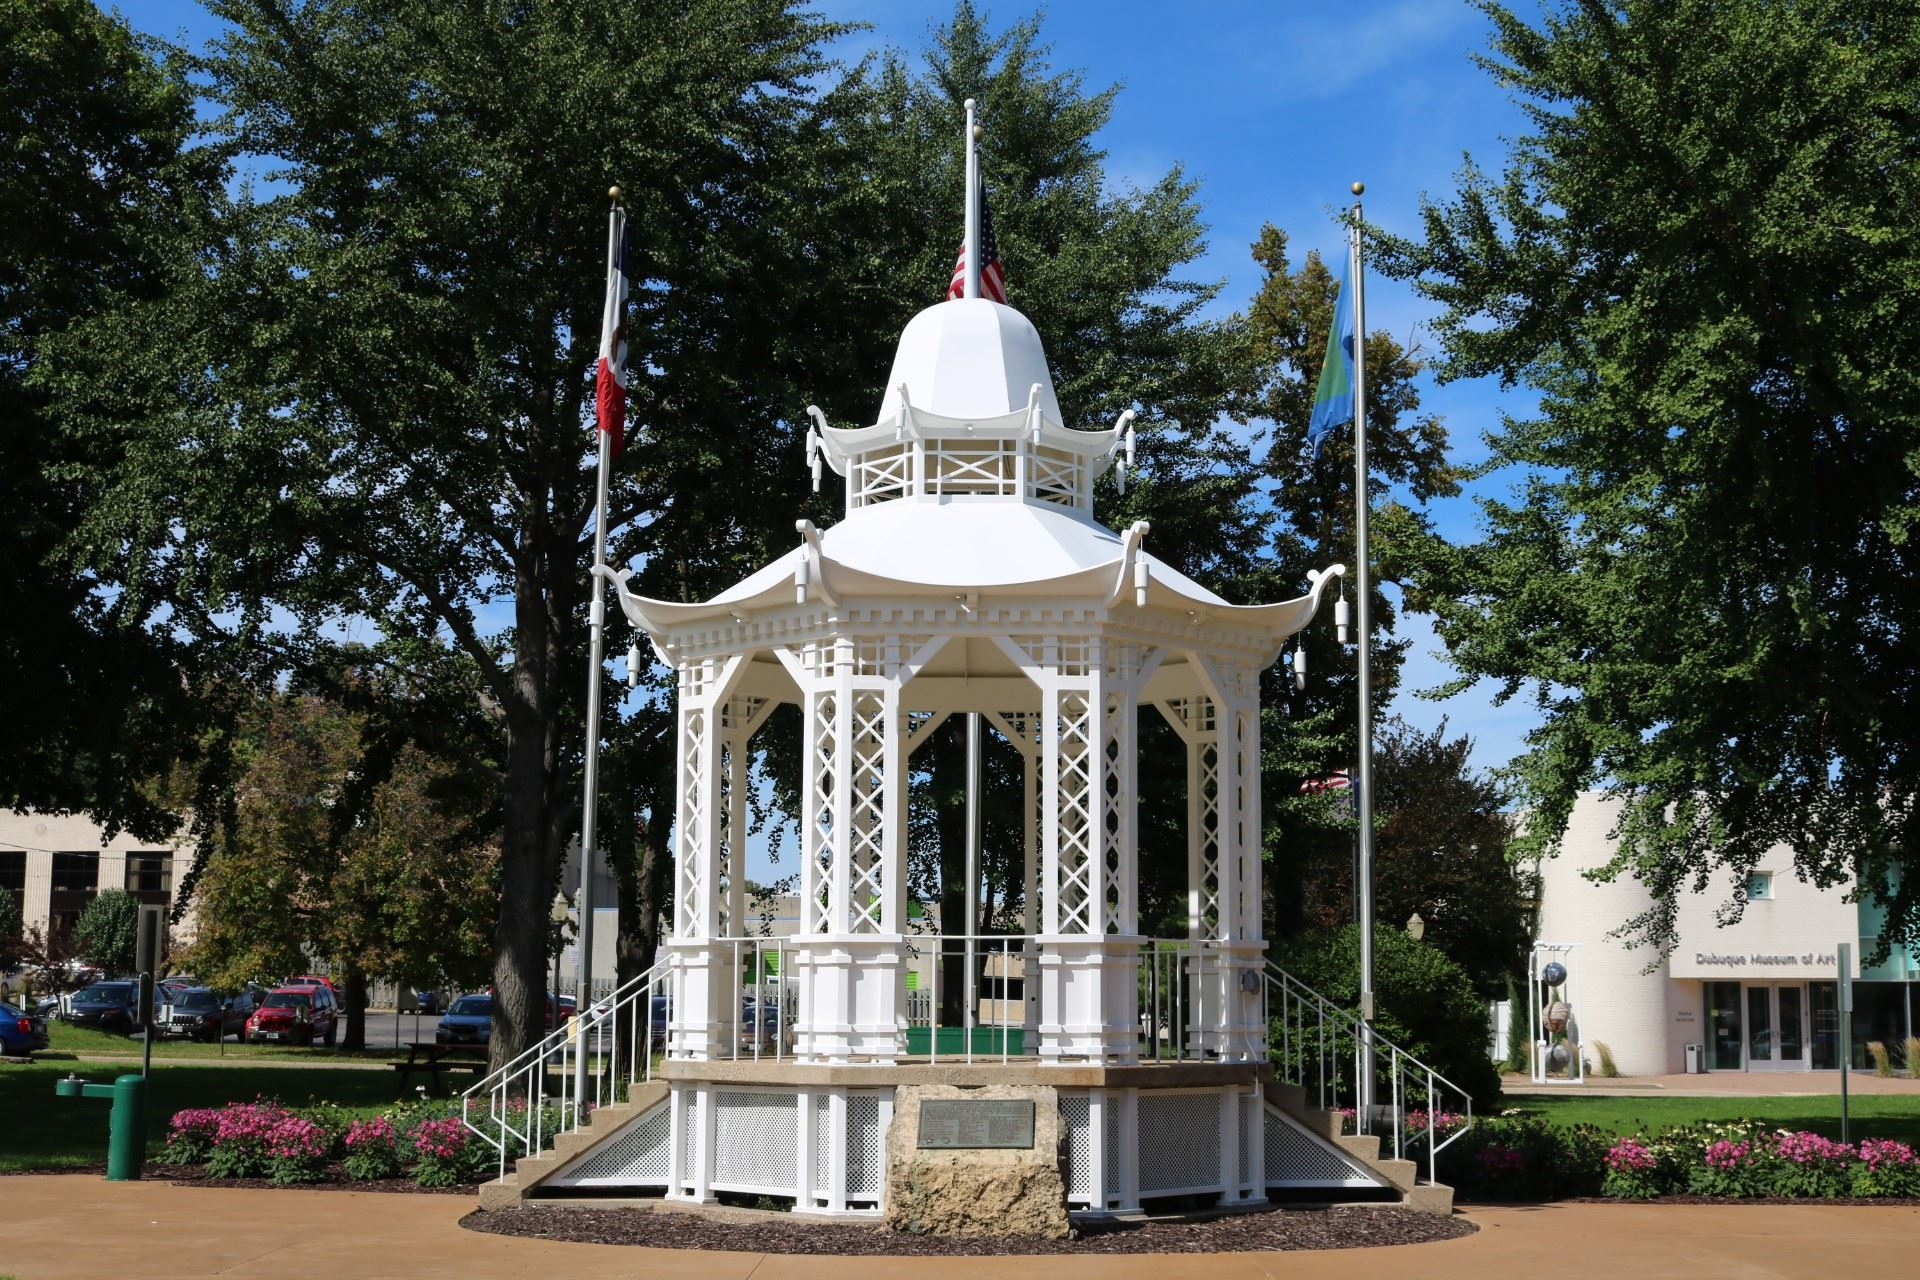 The Washington Park Gazebo price is $20.00 for a rental.